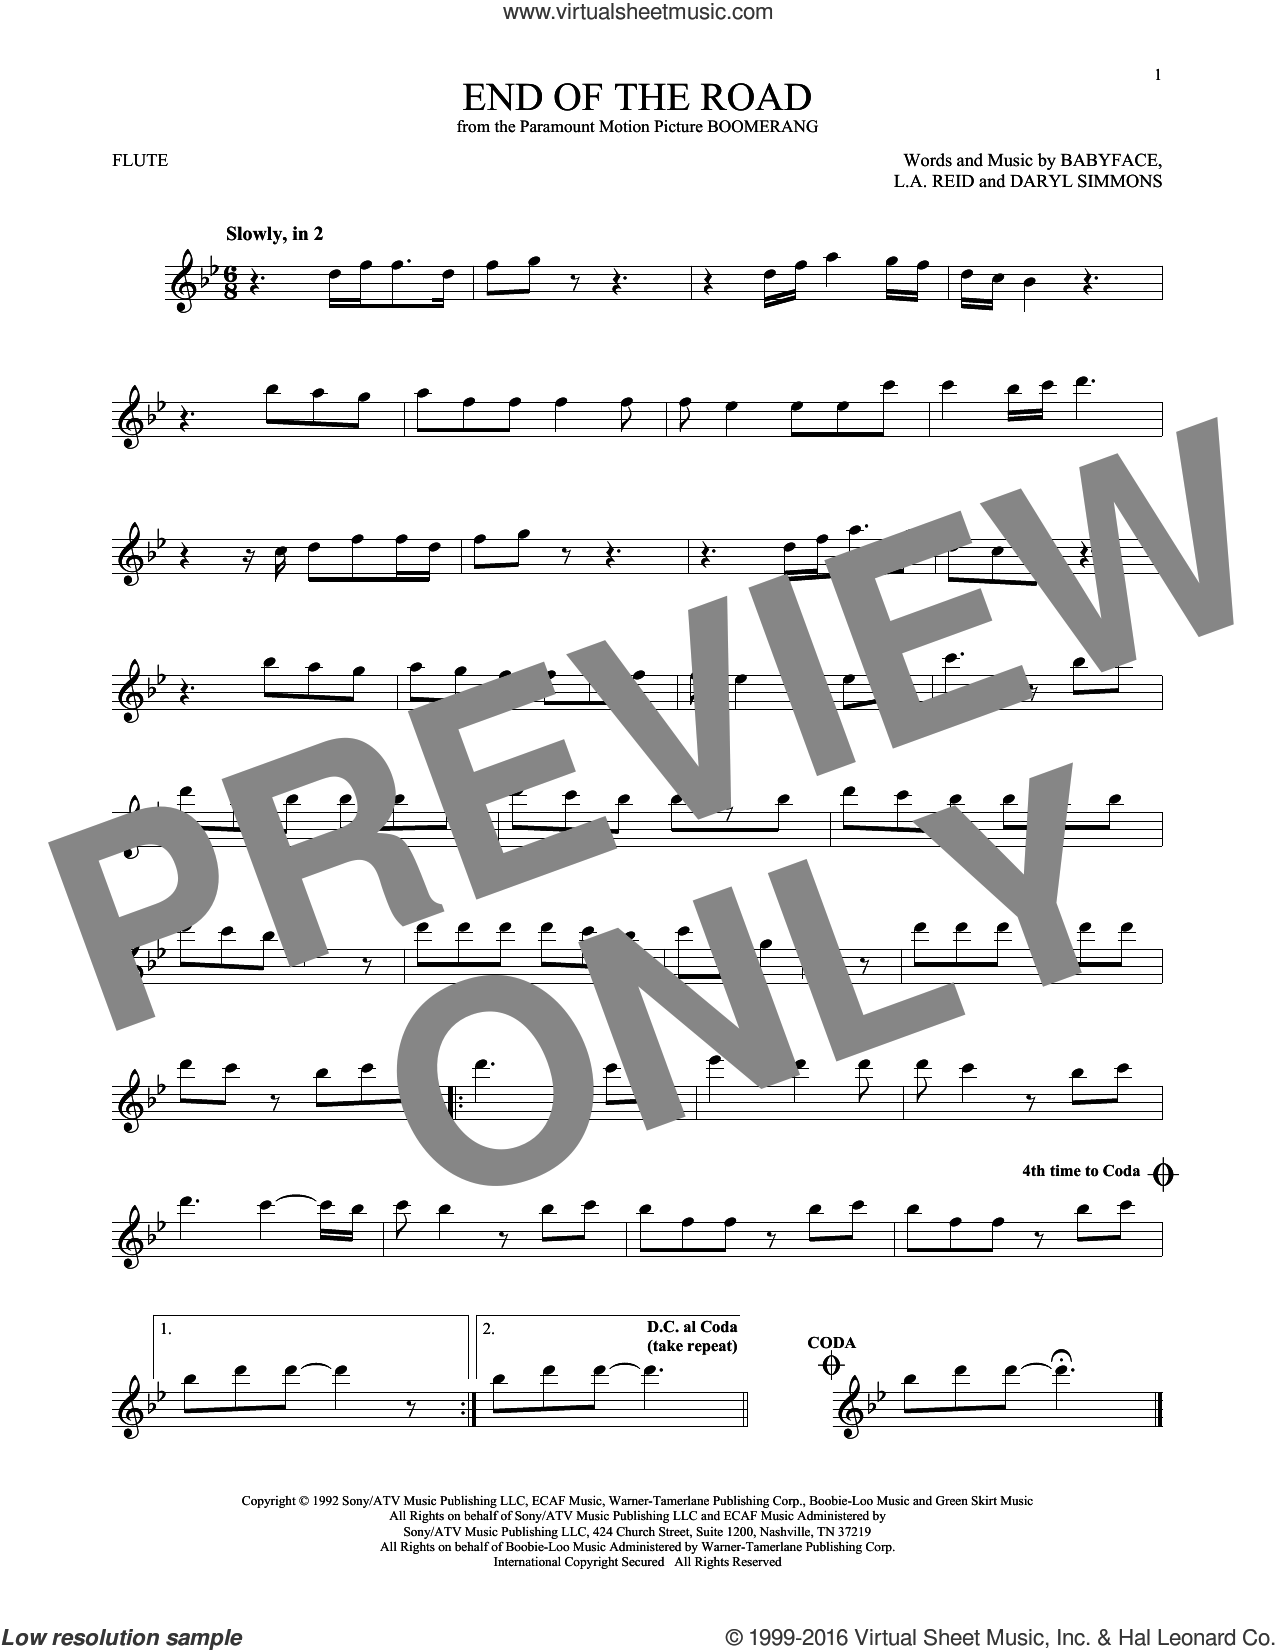 End Of The Road sheet music for flute solo by Boyz II Men, Babyface, DARYL SIMMONS and L.A. Reid, intermediate skill level